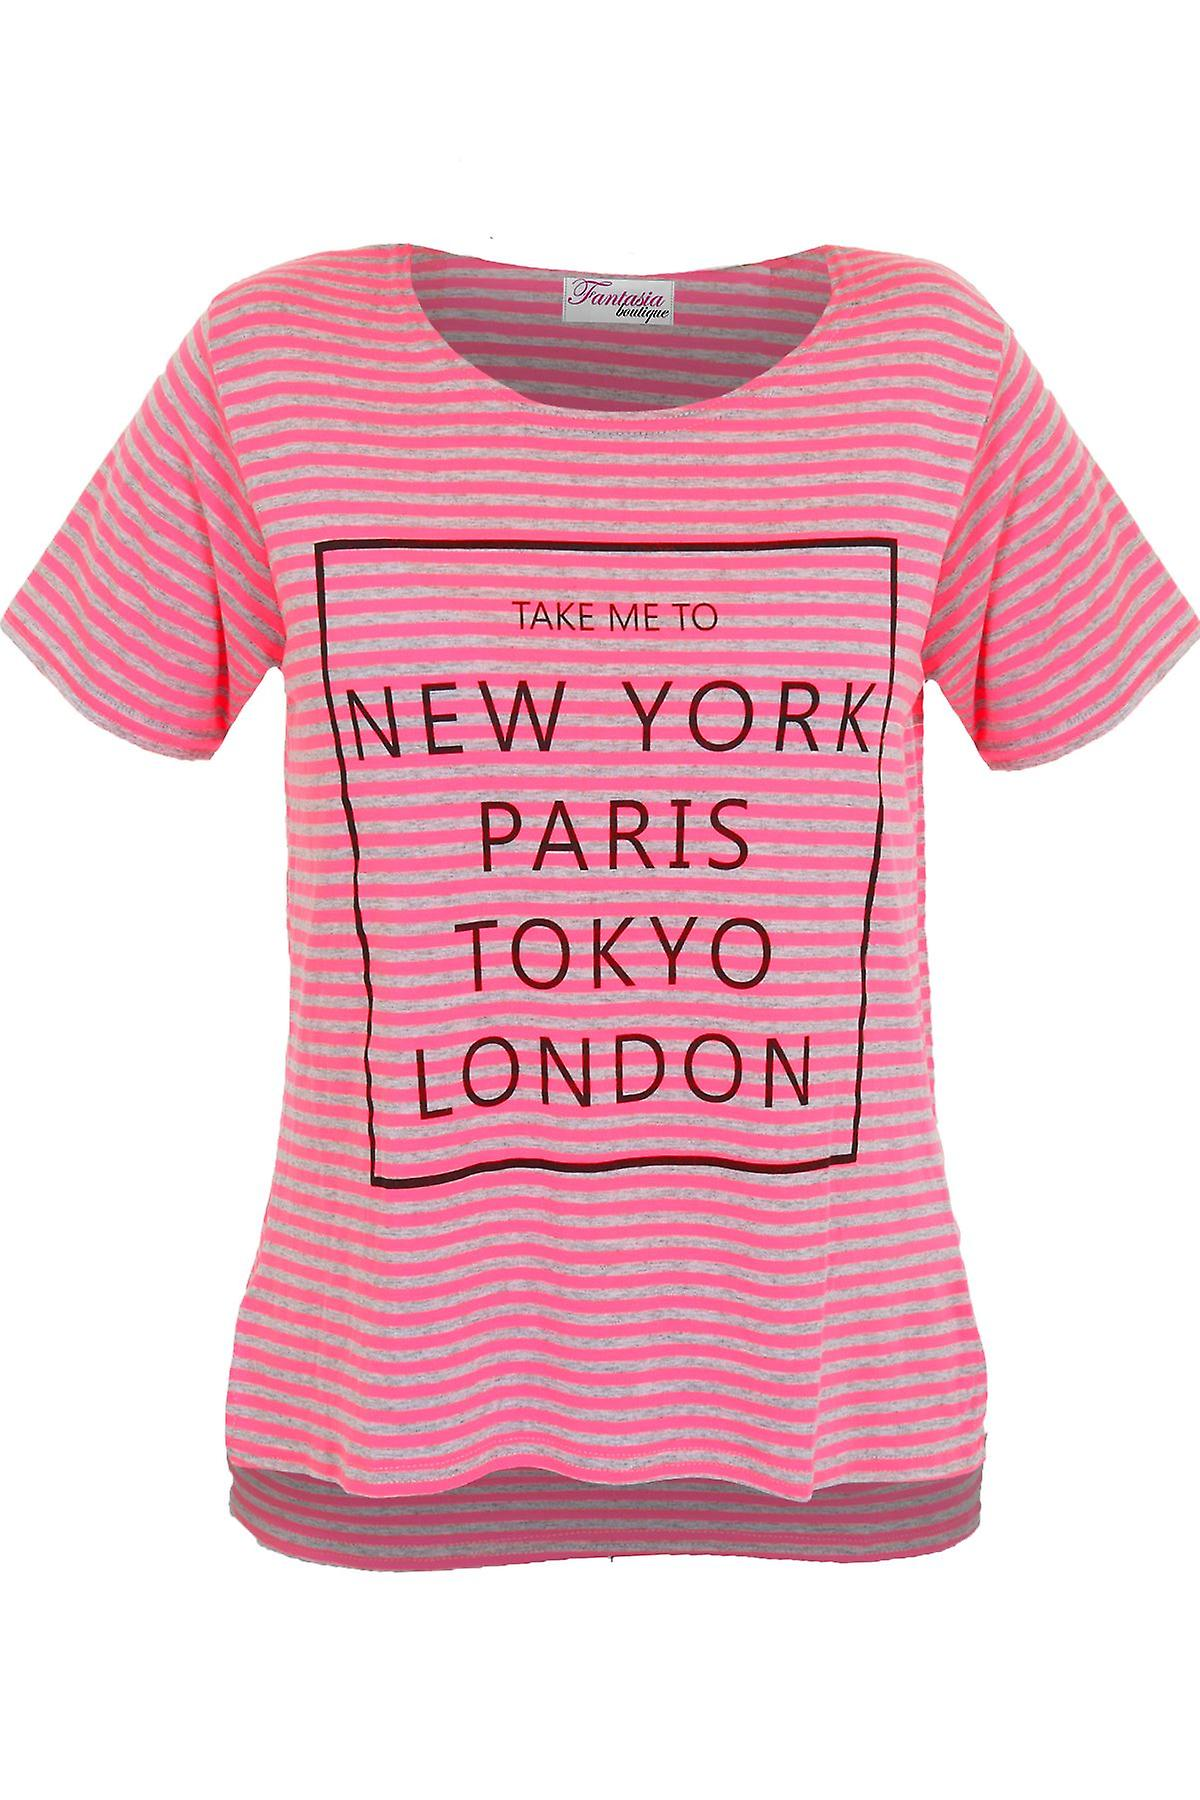 Girls Short Sleeve Tokyo New York Paris London Stripe Print High Low T-Shirt Top